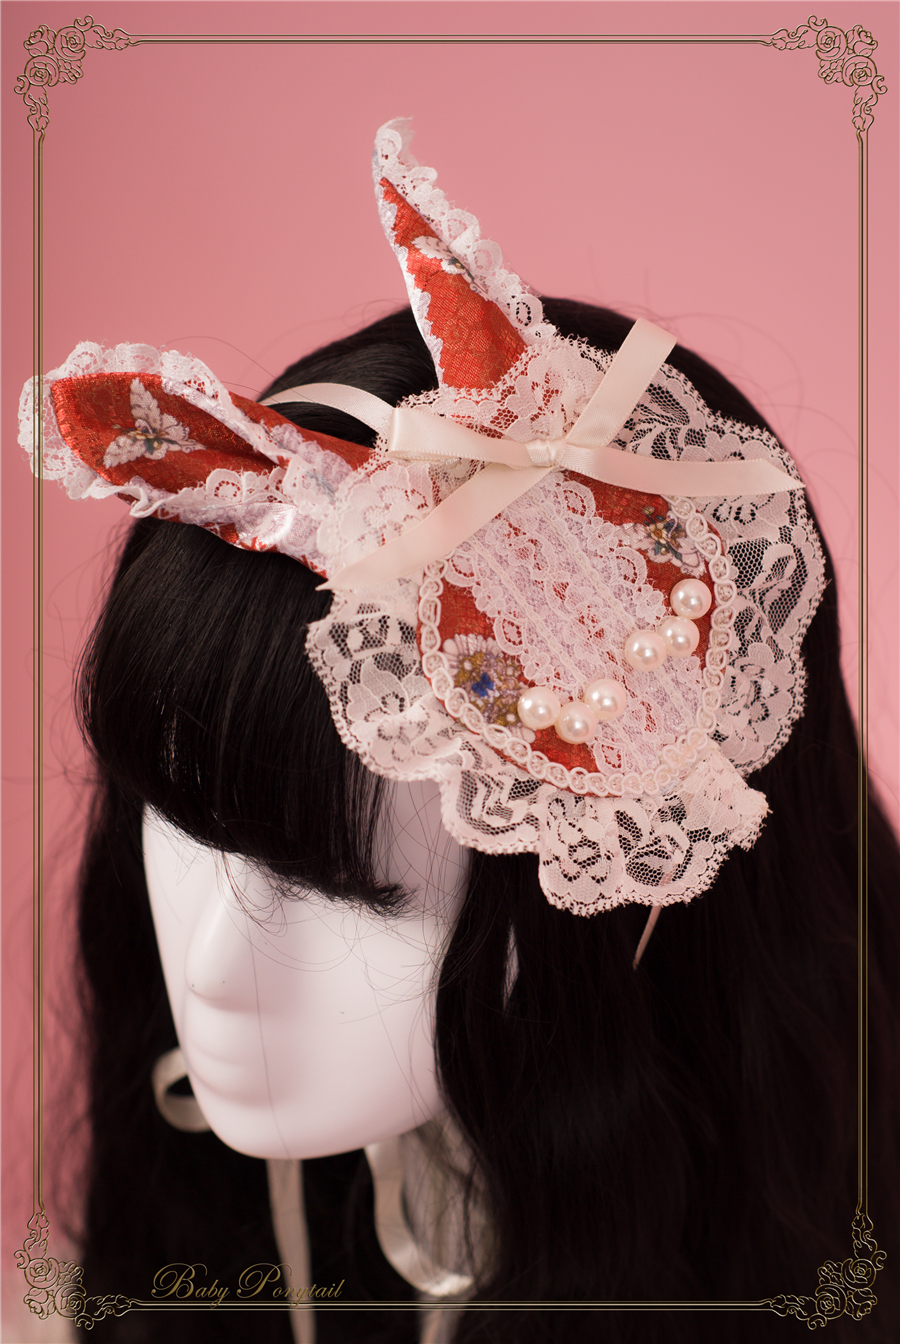 BabyPonytail_Stock Photo_My Favorite Companion_Bunny Head Dress_15.jpg